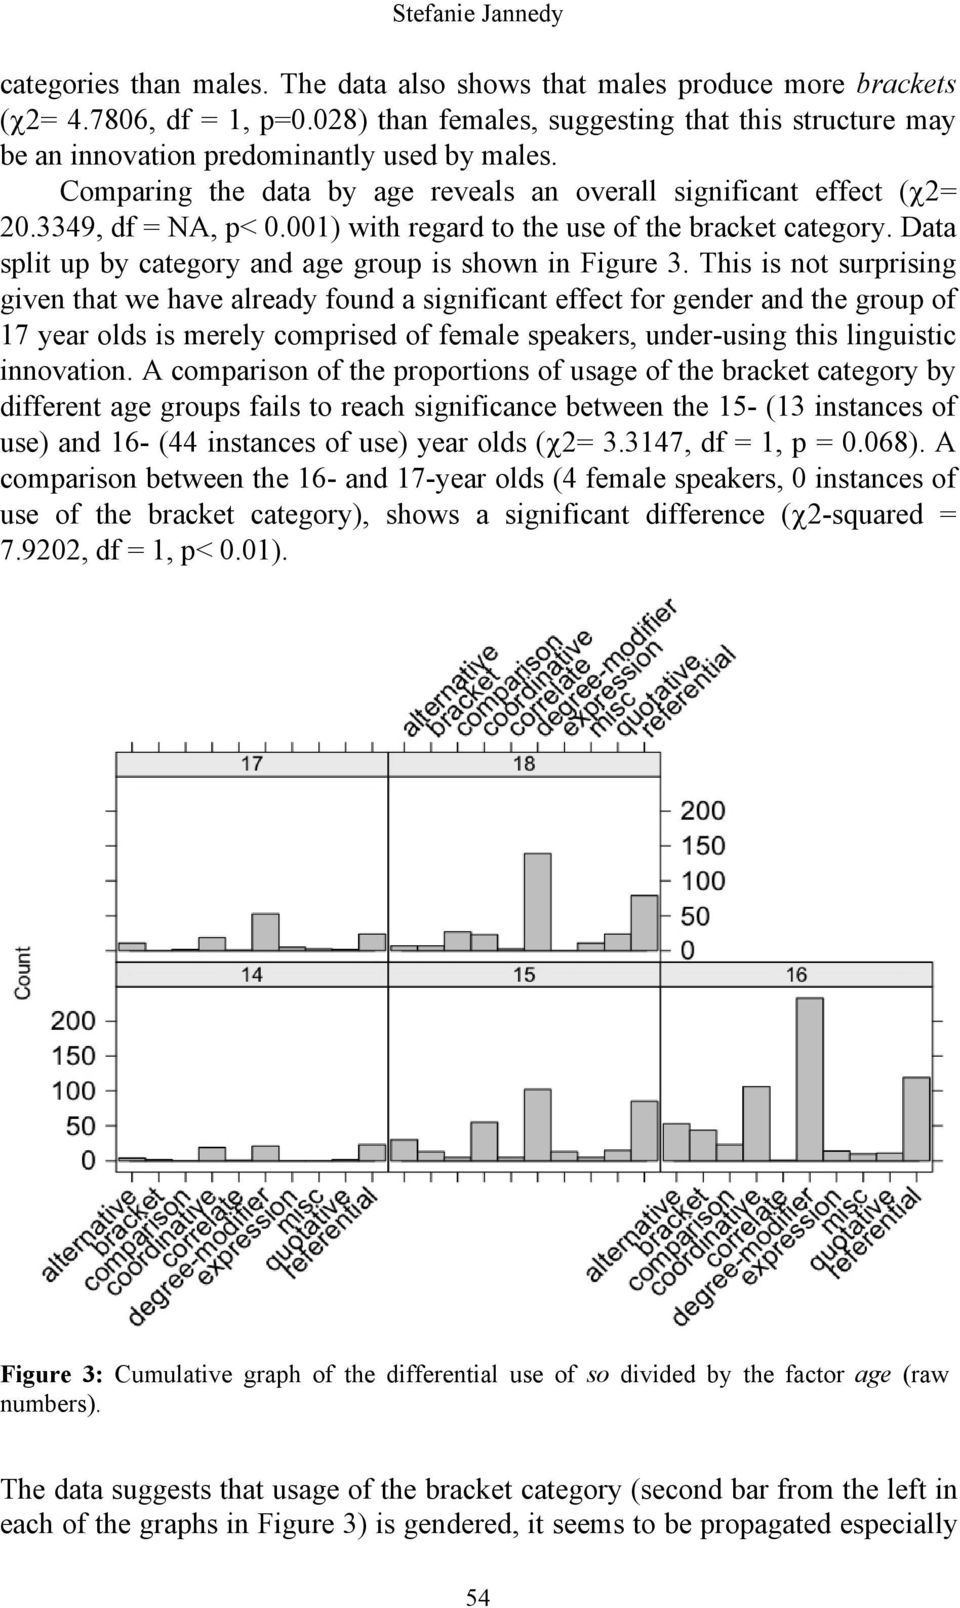 001) with regard to the use of the bracket category. Data split up by category and age group is shown in Figure 3.